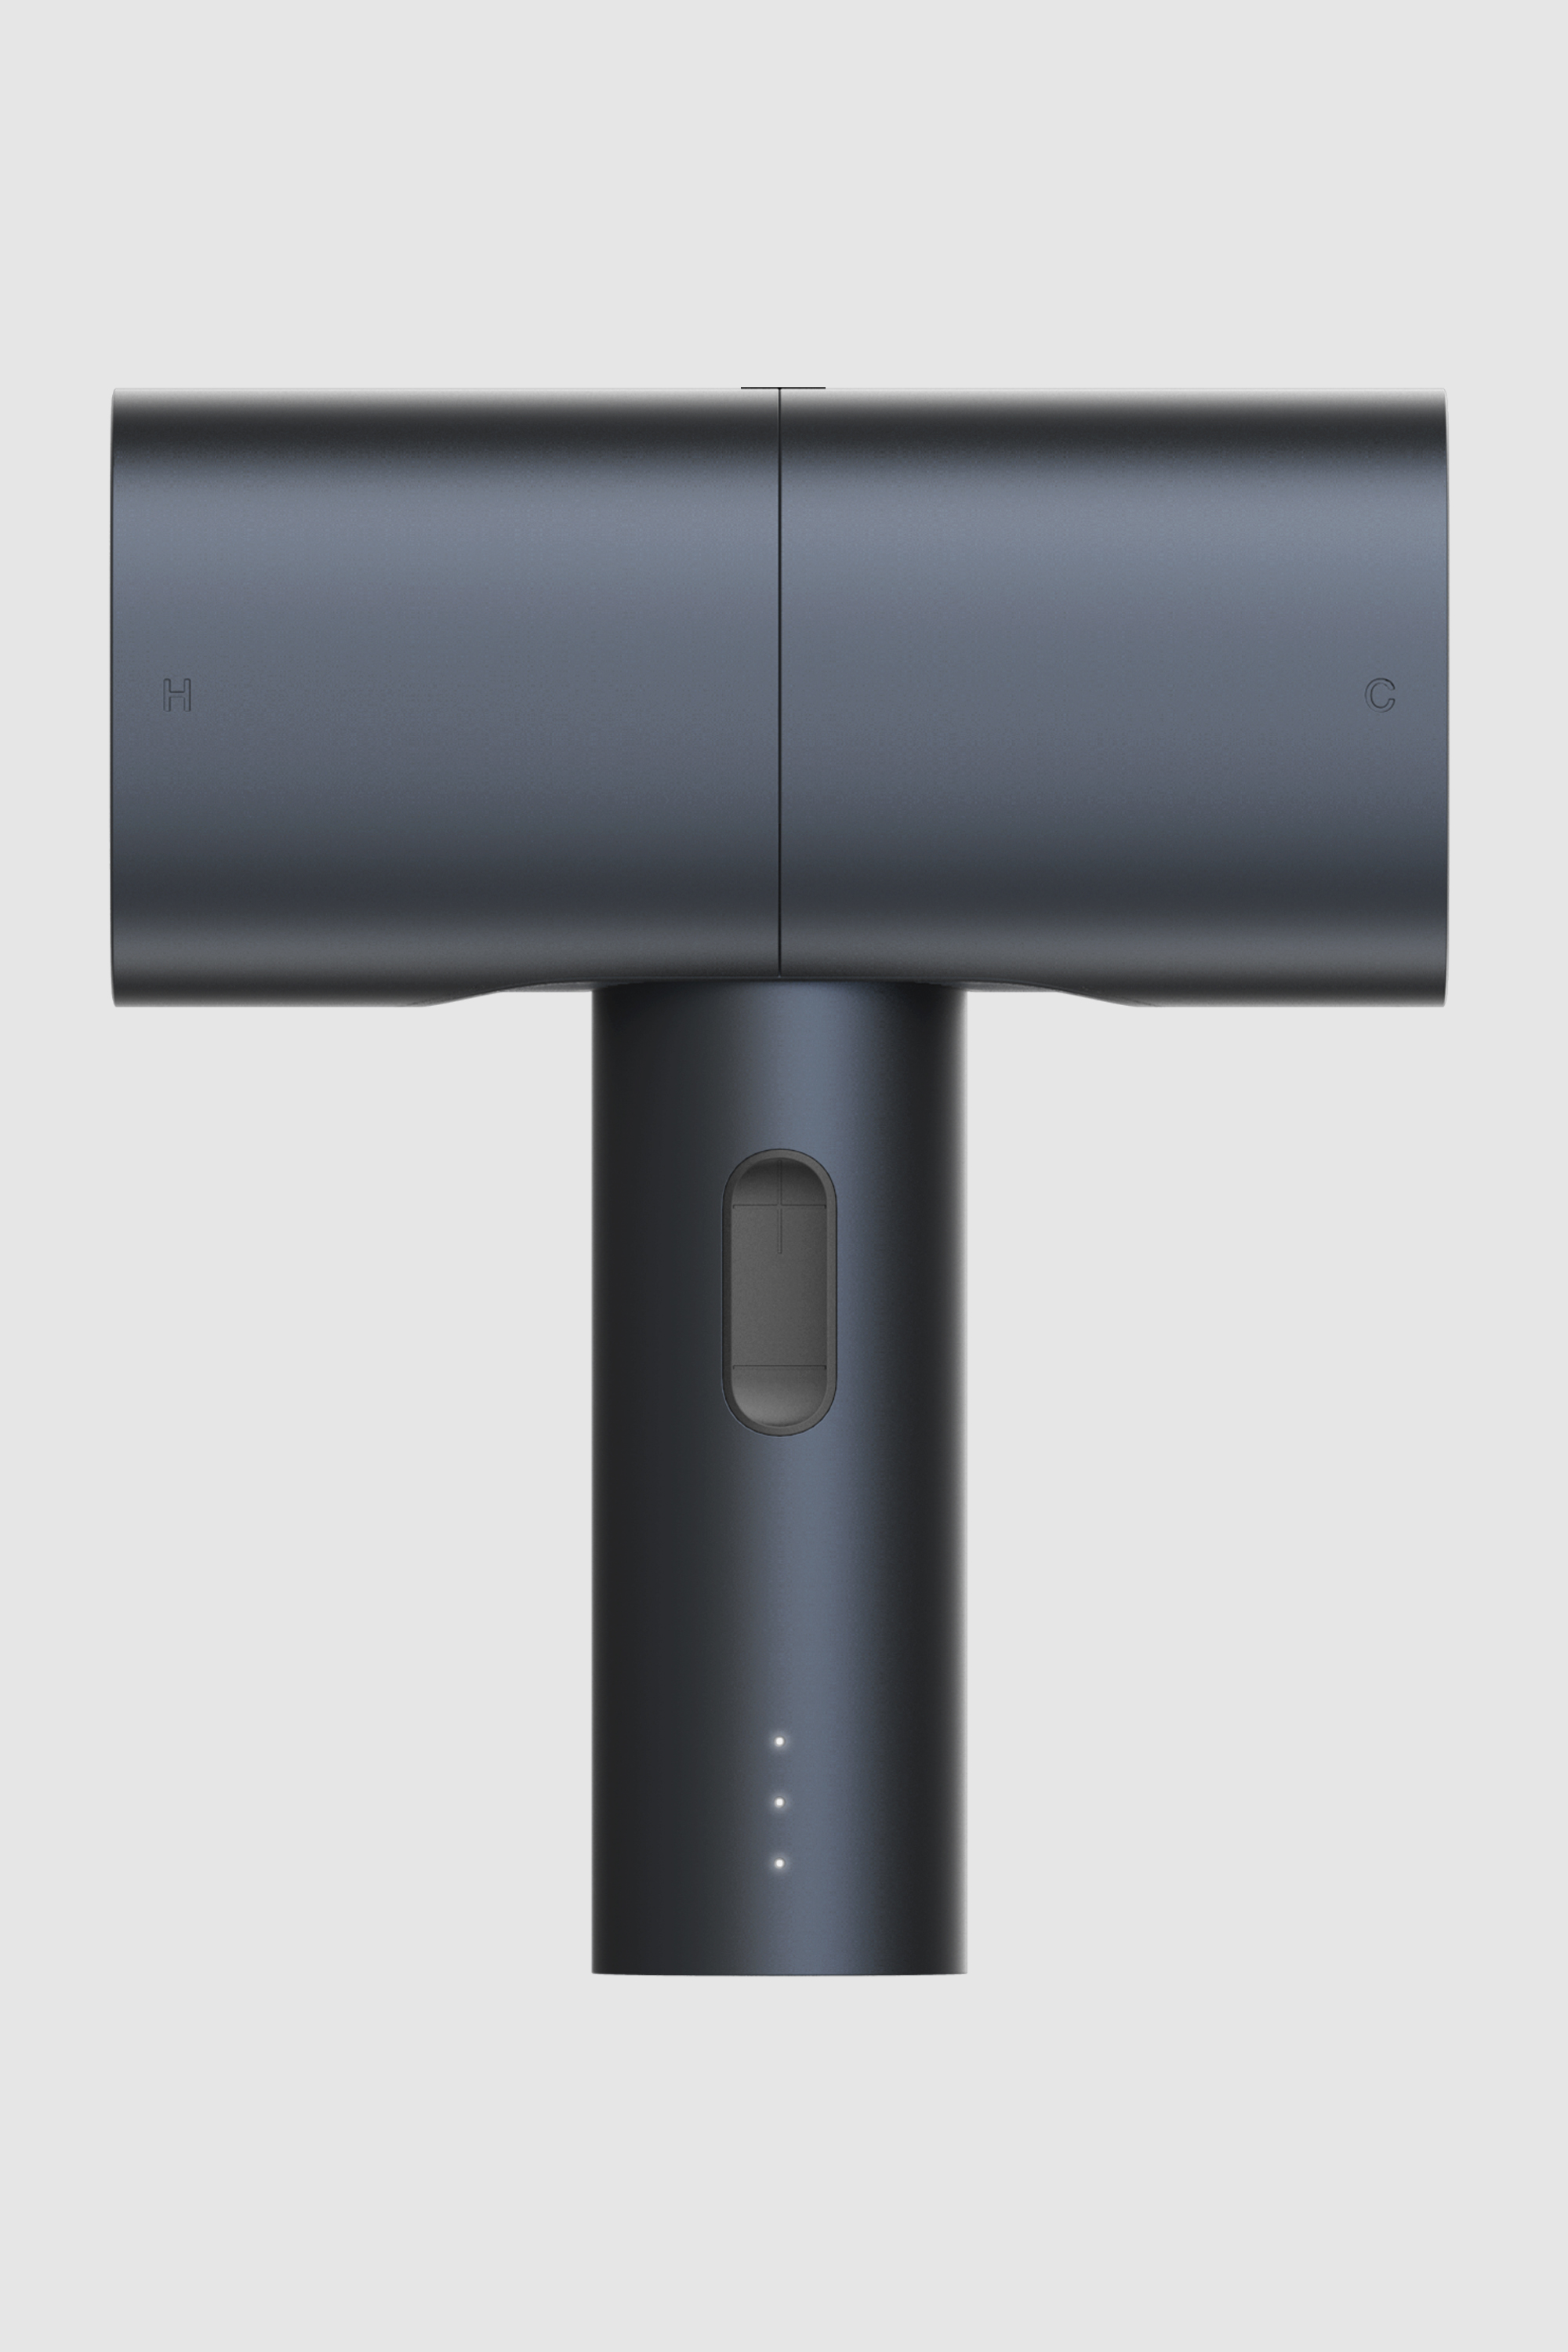 mirrrd_hairdryer-final-01-front.jpg